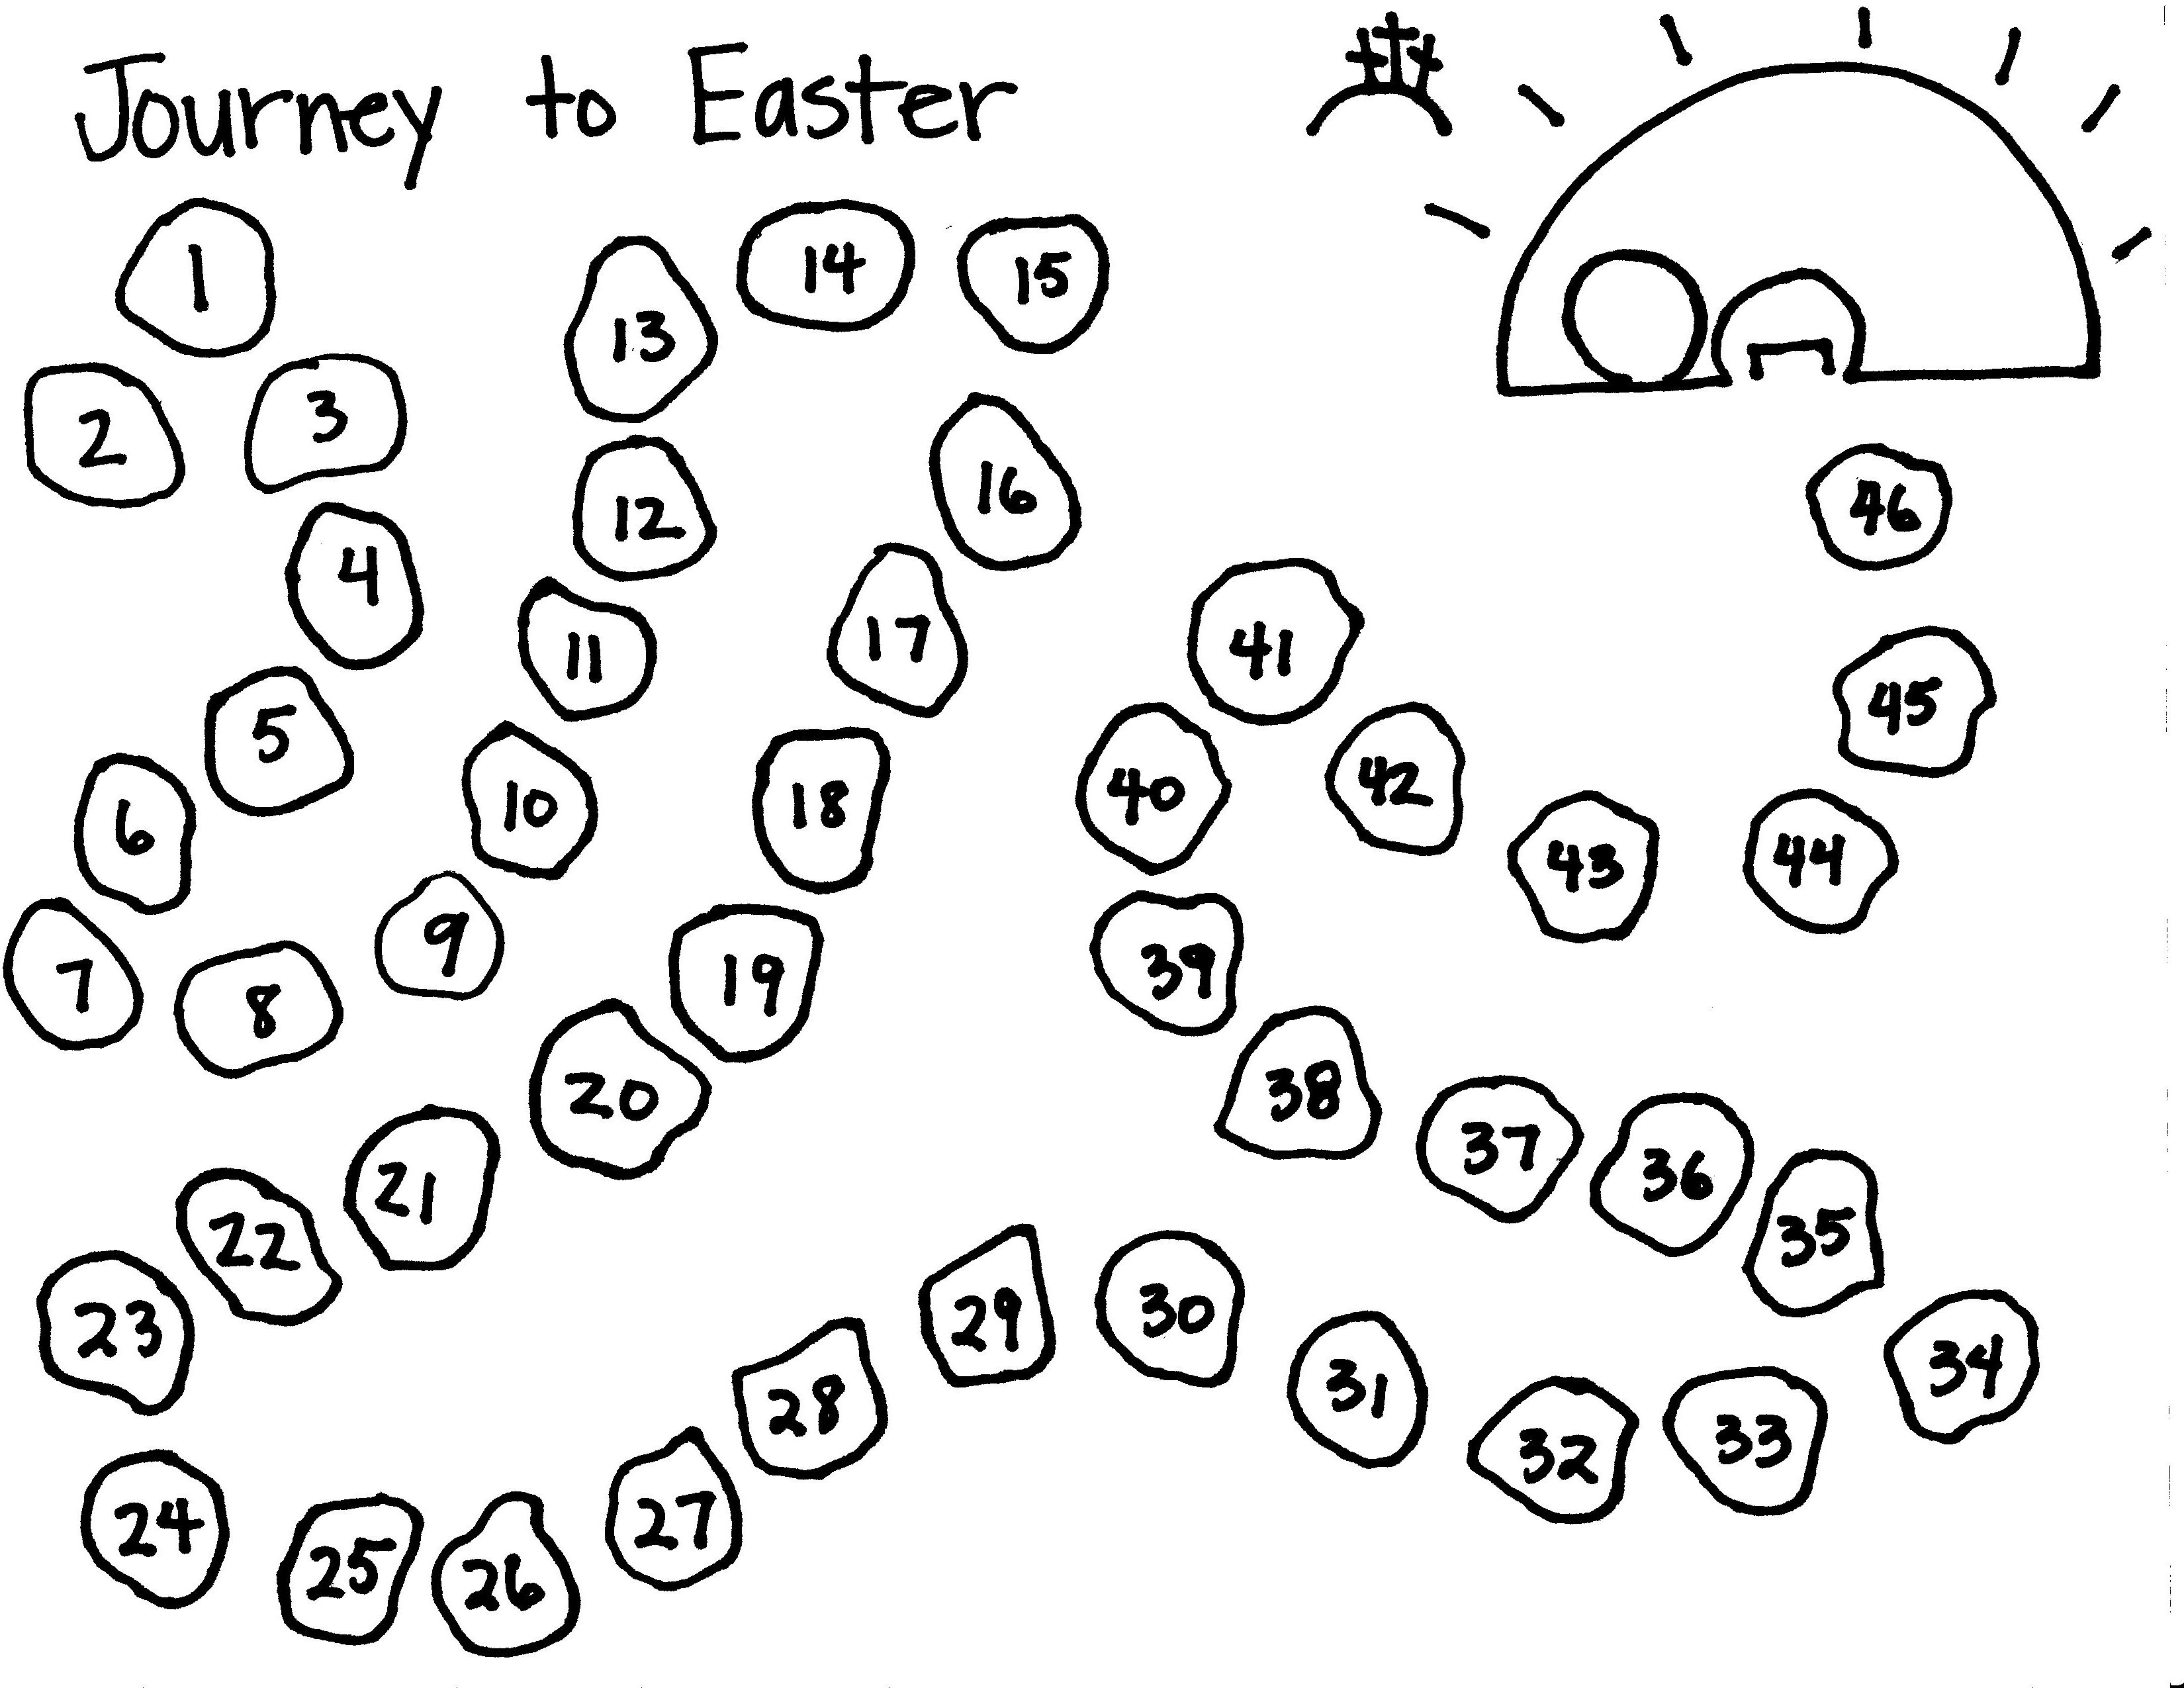 Color One Step Each Day To Journey Through Lent To The